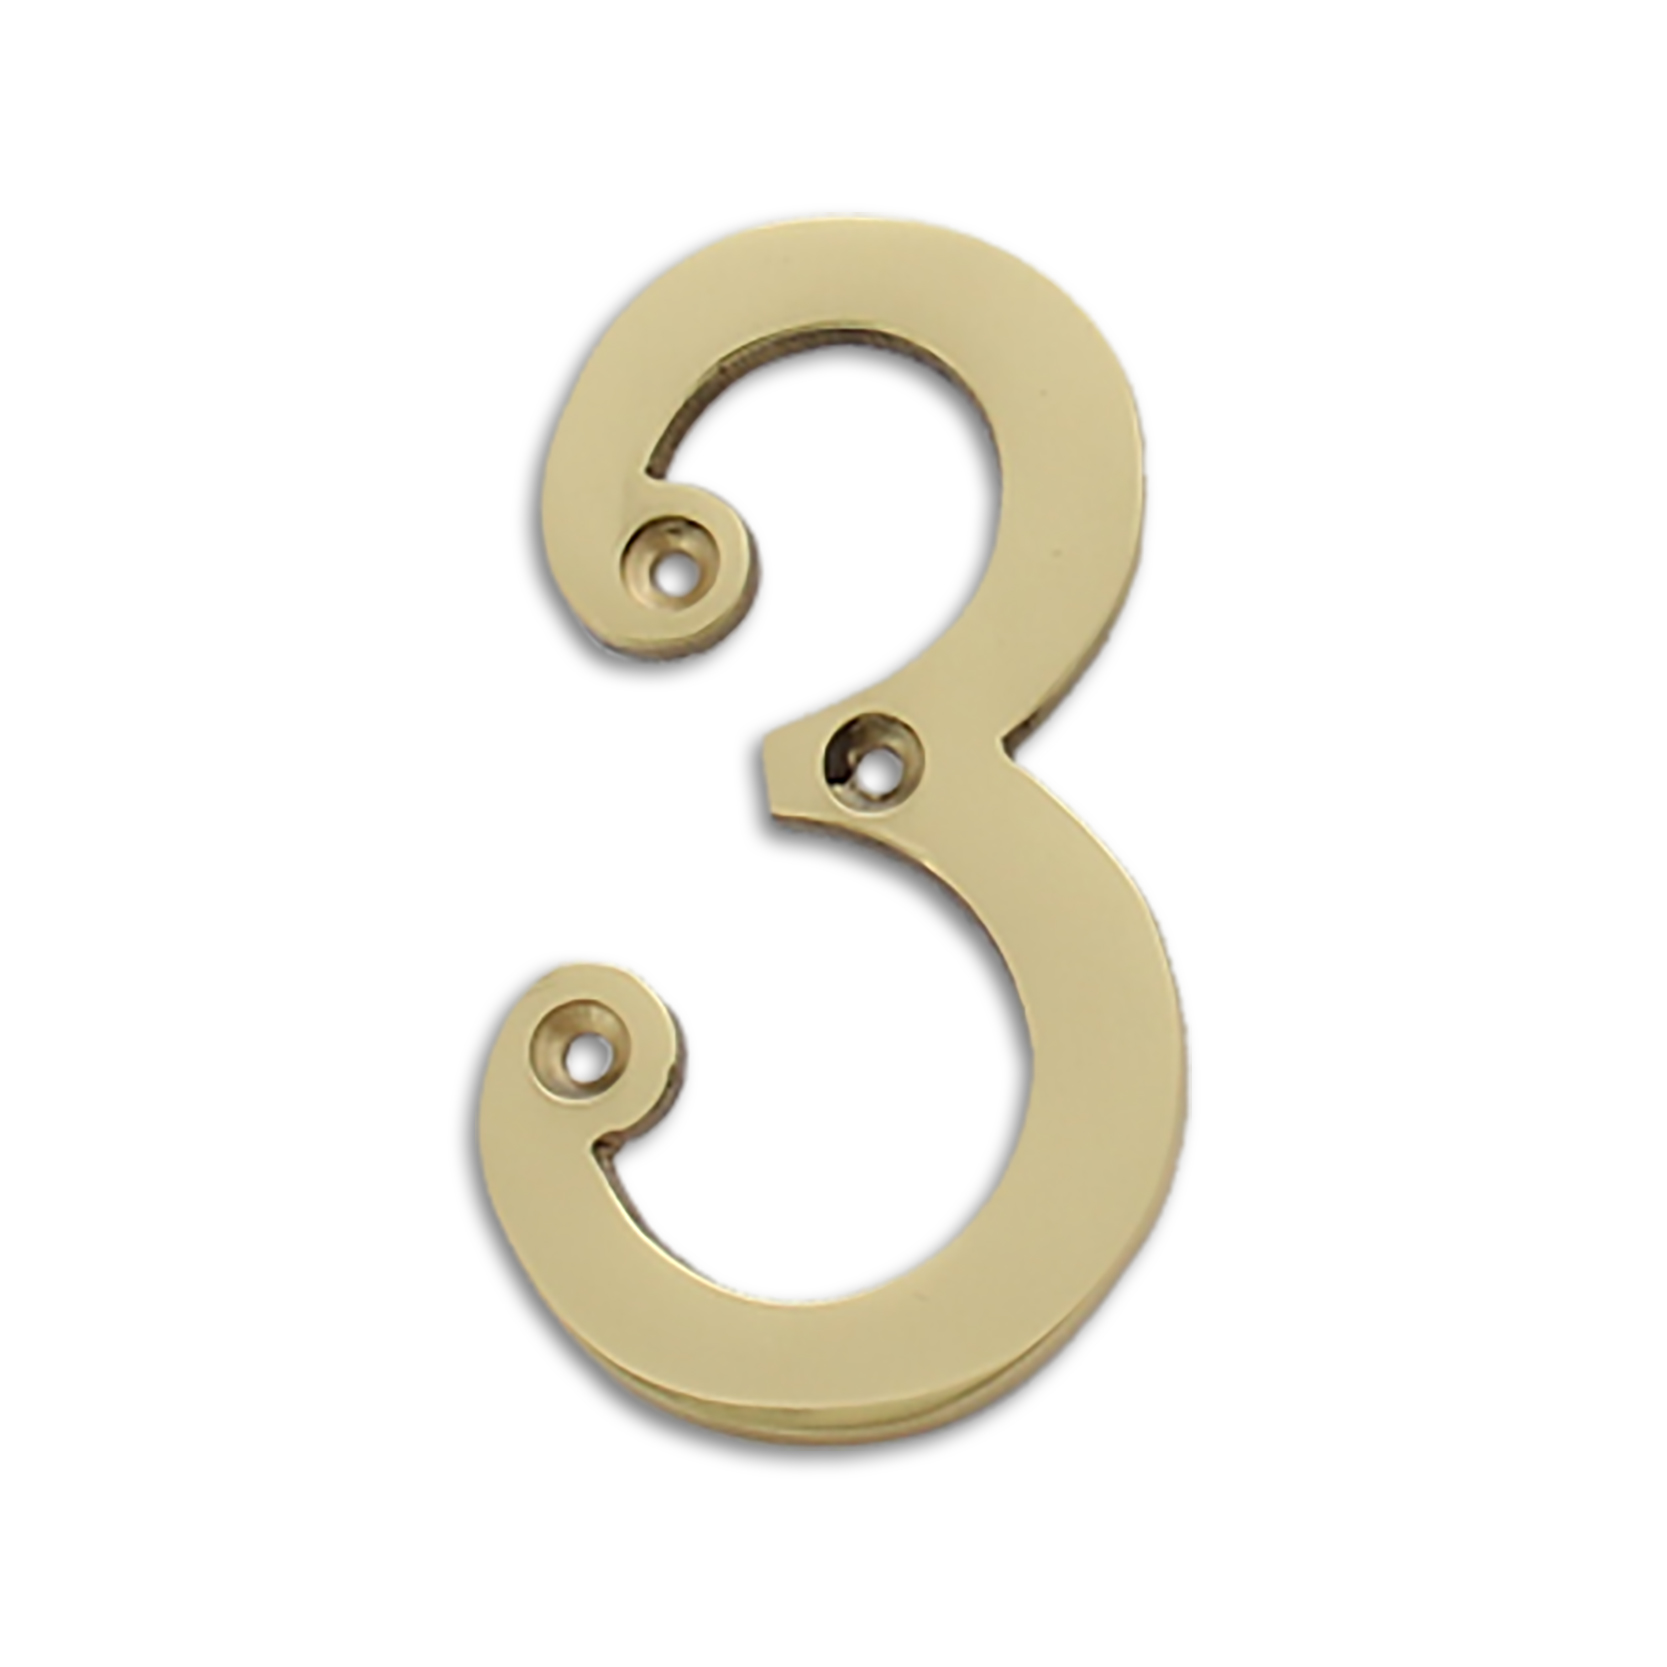 4-inch brass metal house number in polished brass finish - metal number 3